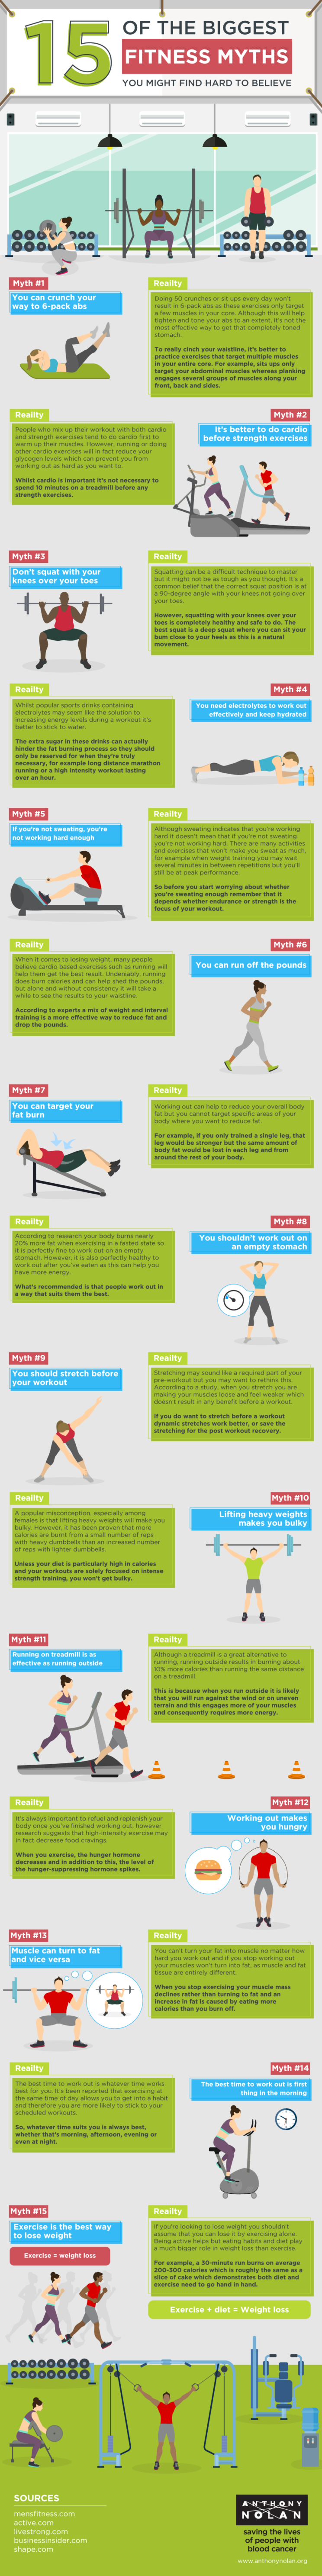 15-of-the-biggest-fitness-myths-you-might-find-hard-to-believe.png